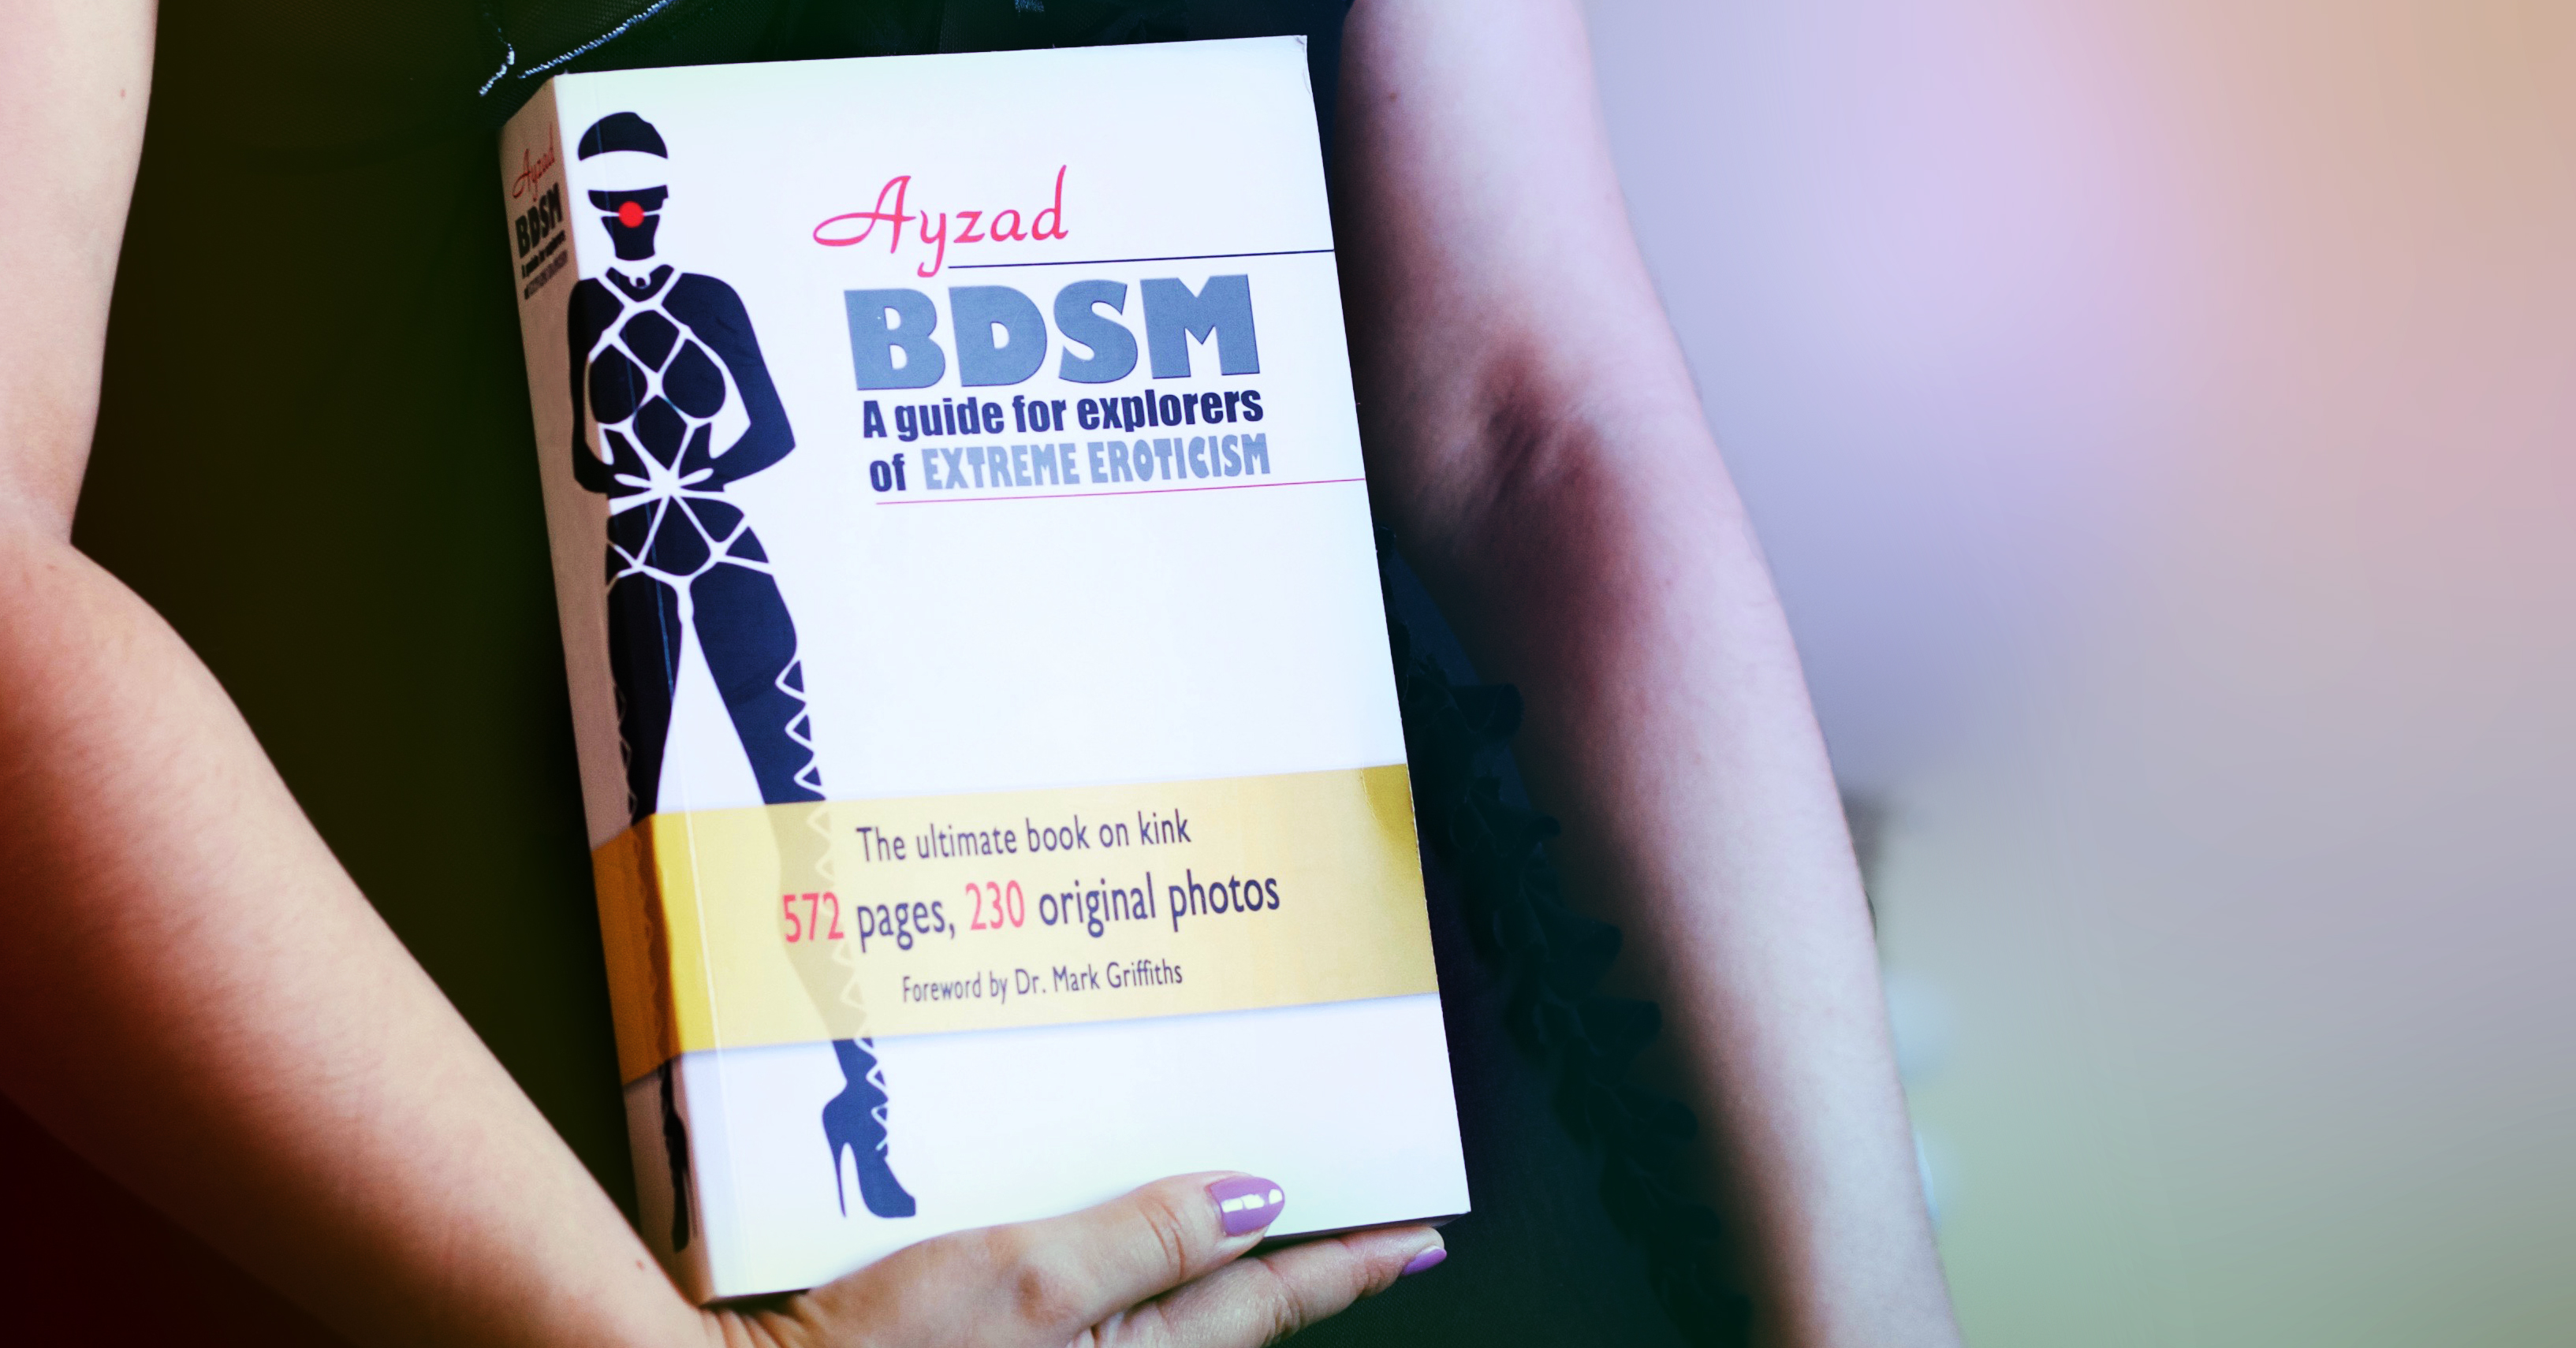 Ayzad's BDSM - A Guide for Explorers of Extreme Eroticism